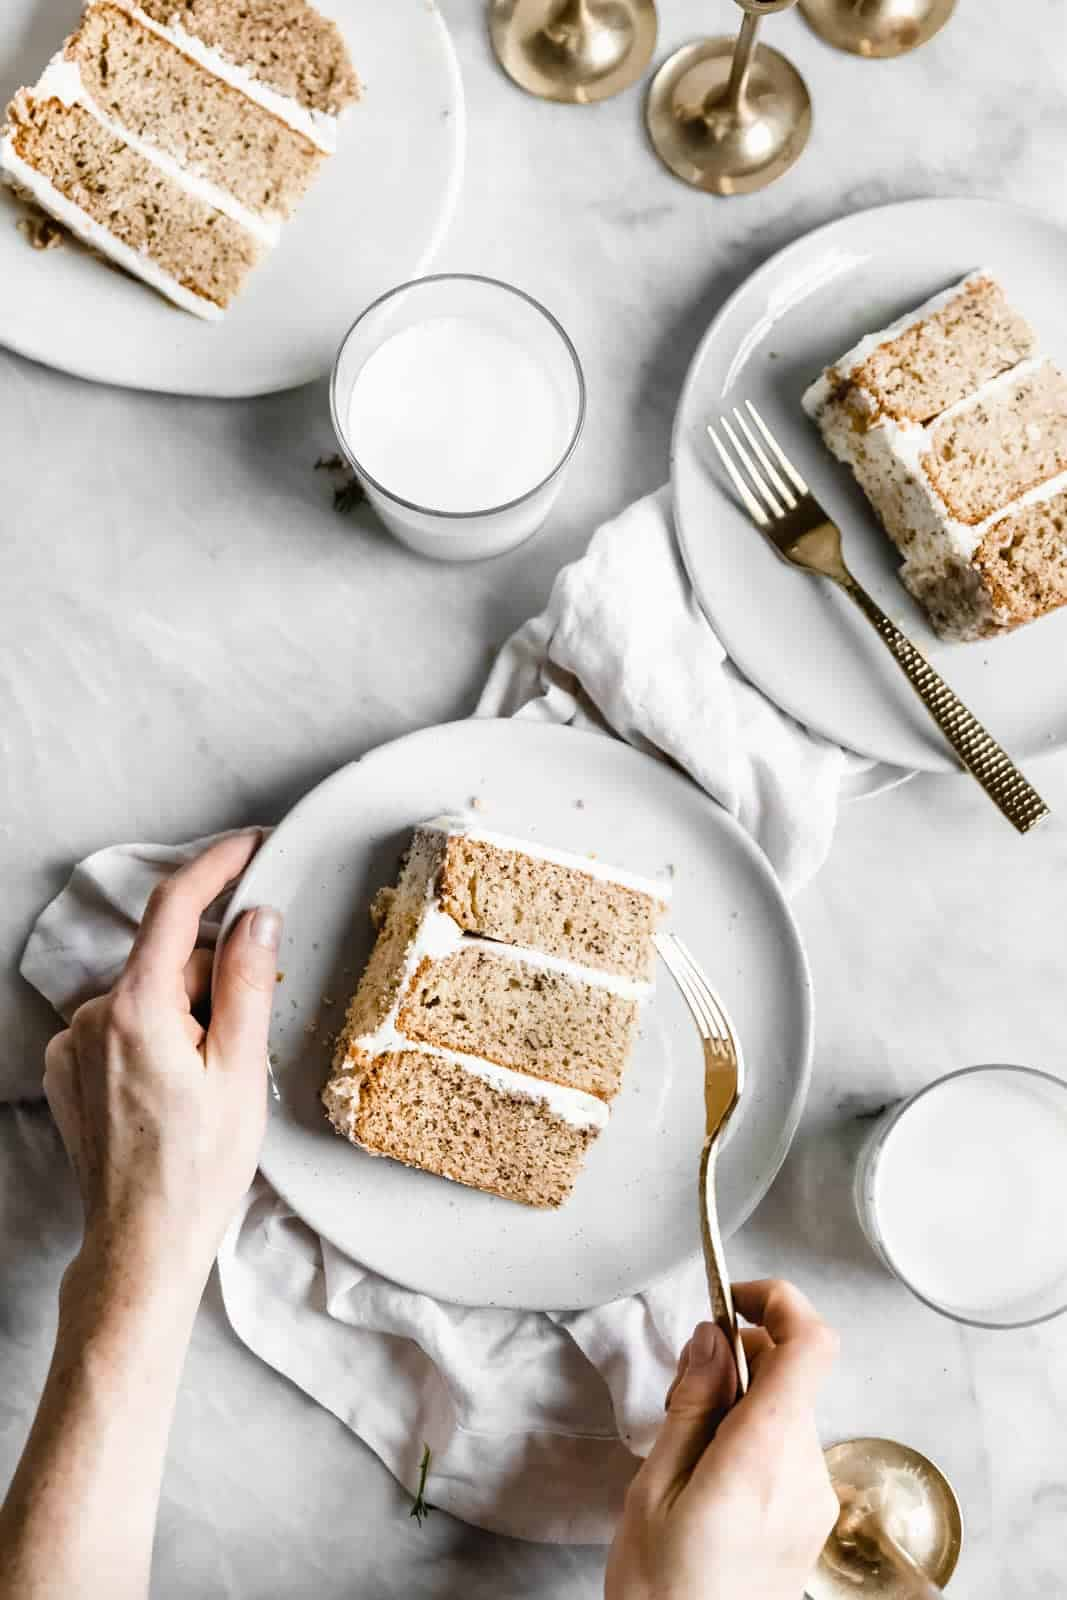 slices of Maple Walnut Cake with Maple Frosting